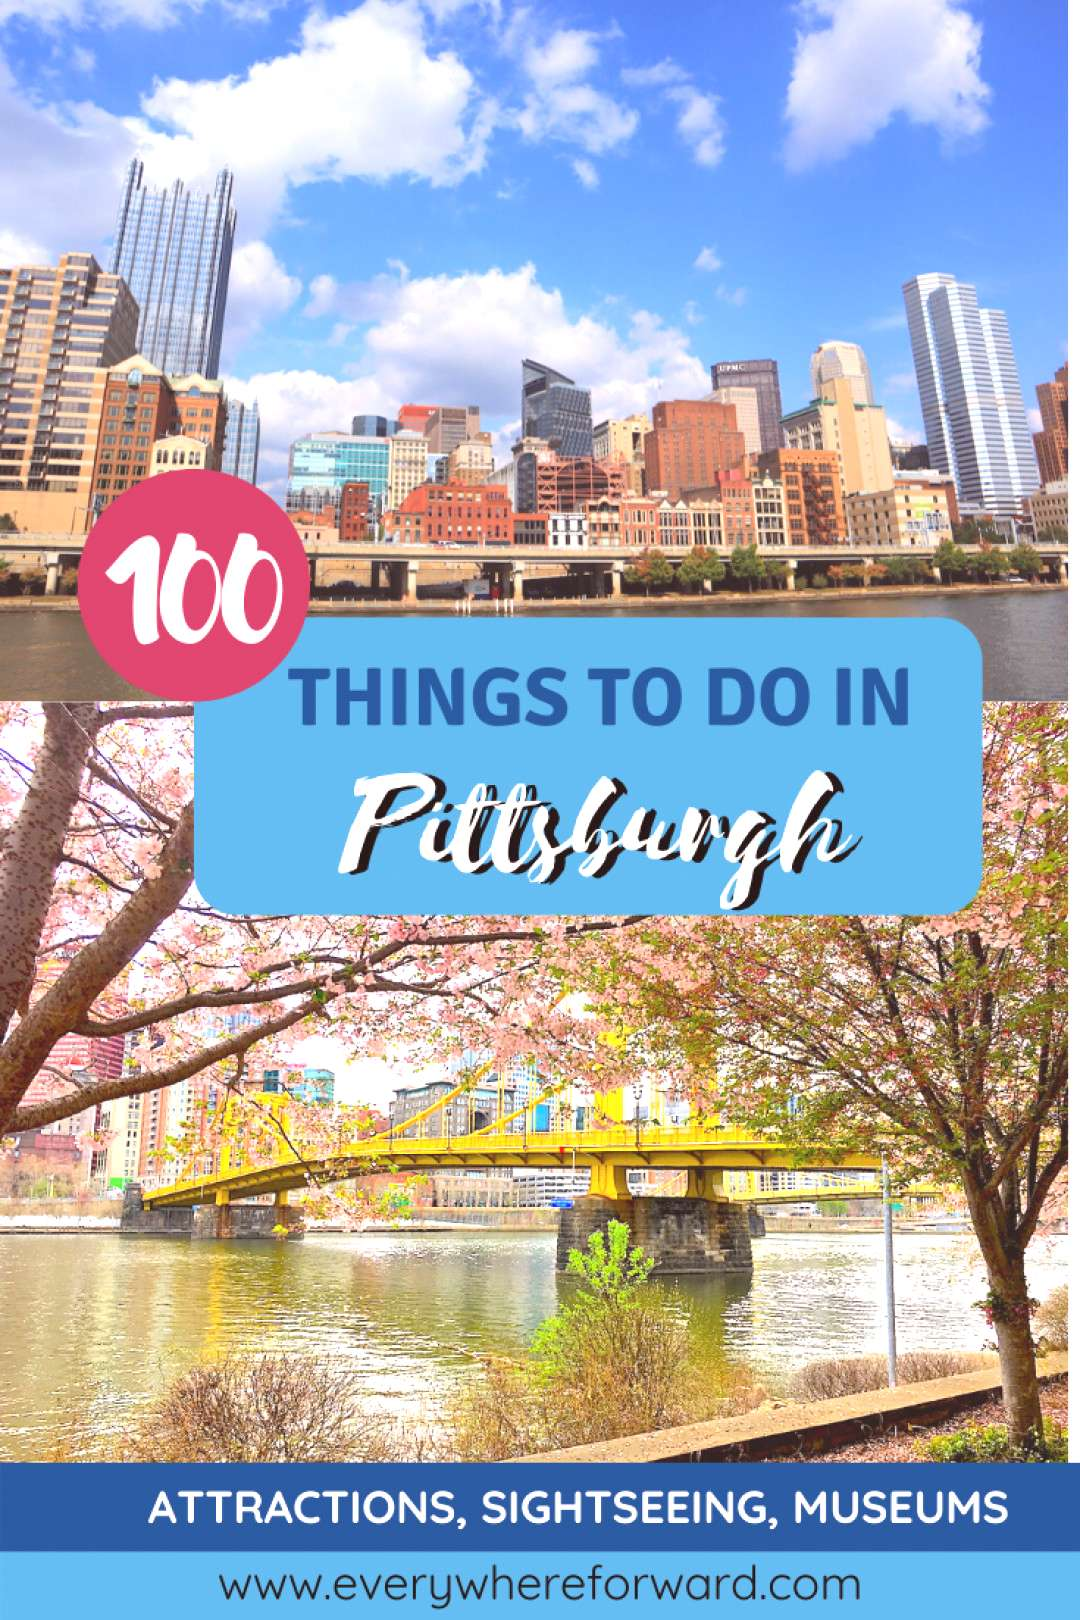 Over 100 fun things to do in Pittsburgh this weekend during your free time. Things do to din Pittsb